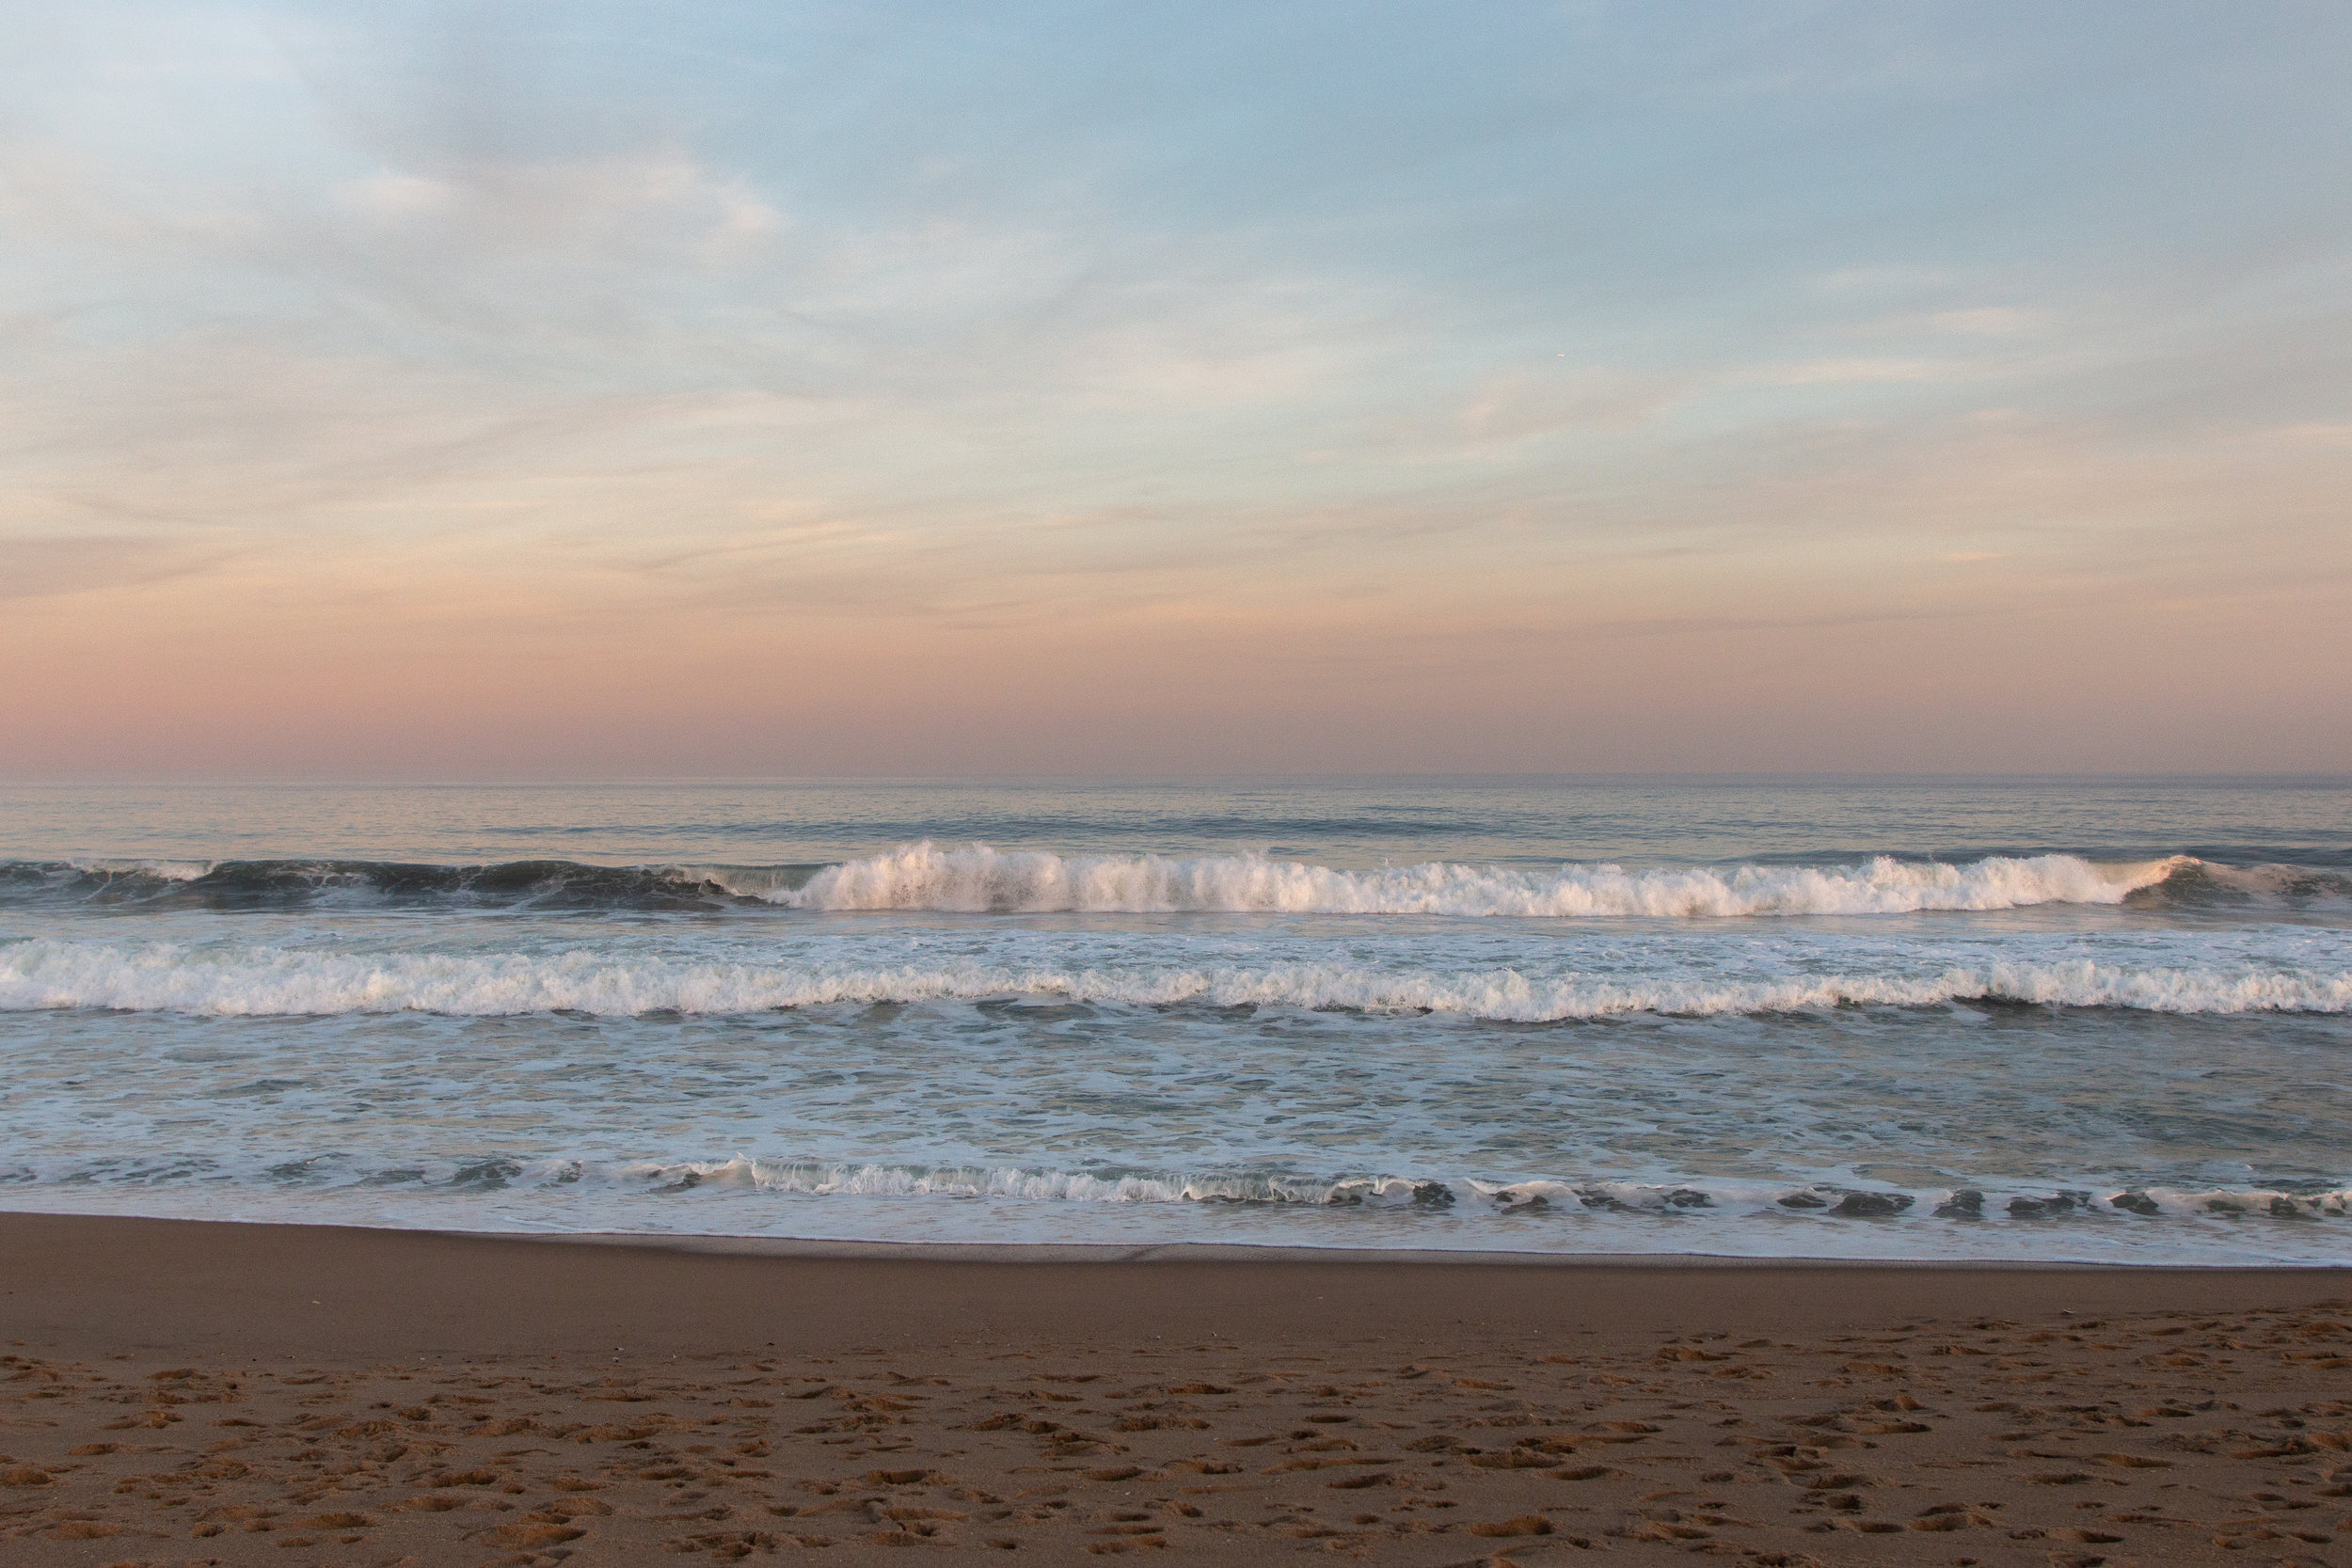 Beach at sunset in Asbury Park, New Jersey. Photo by Kayleigh Ann Archbold.